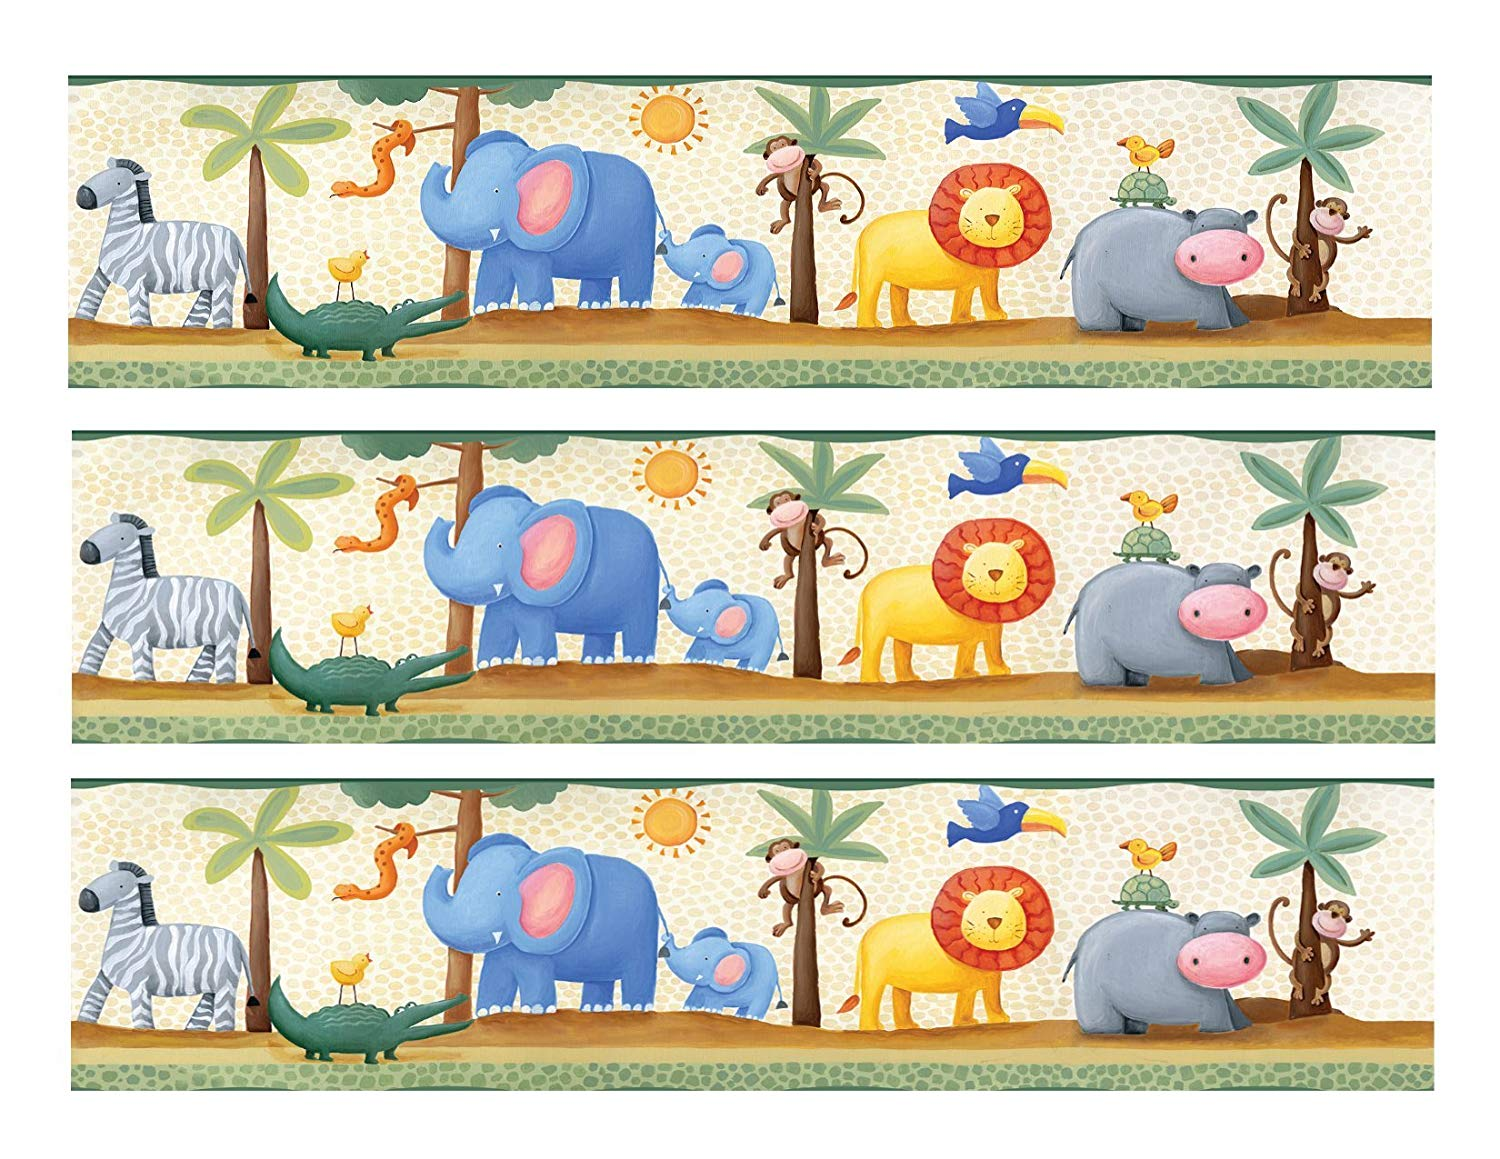 Jungle Animals cake Edible Icing Image border strips (3 Strips).